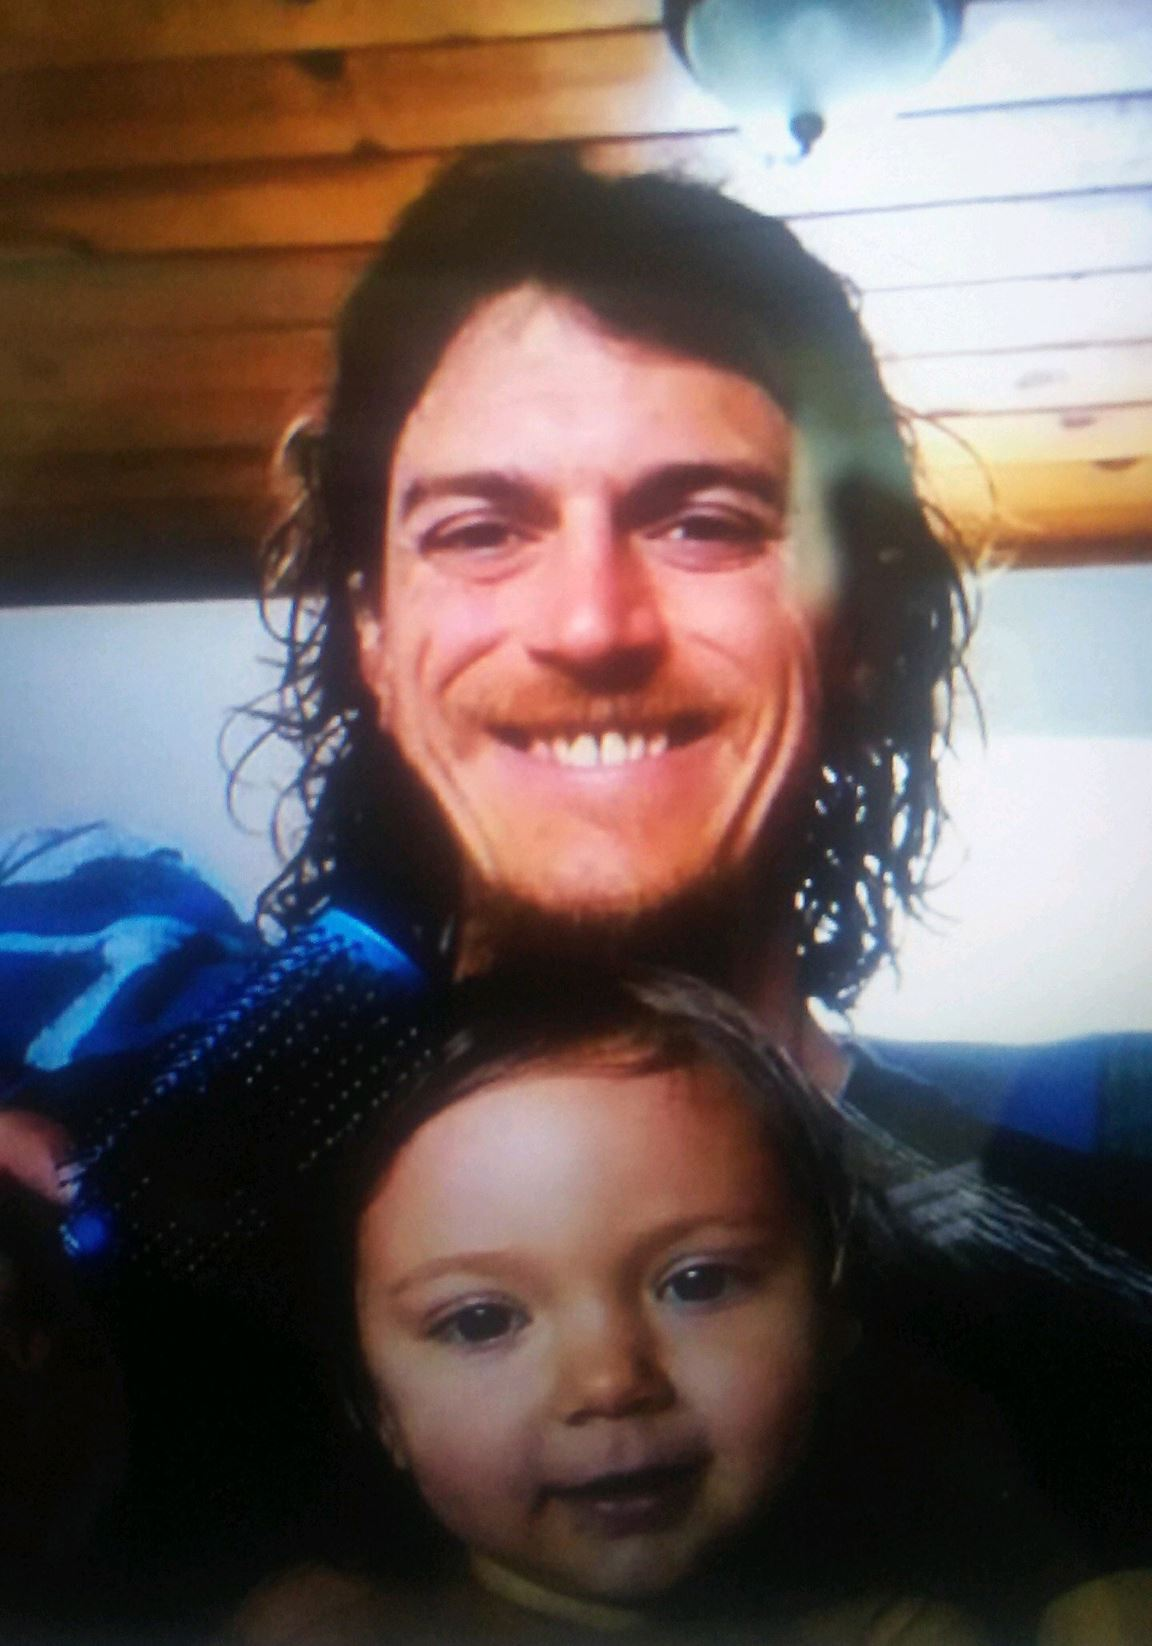 Gregory Carter, 34, is described as a Caucasian male adult, with brown hair and blue eyes. He is 6 f